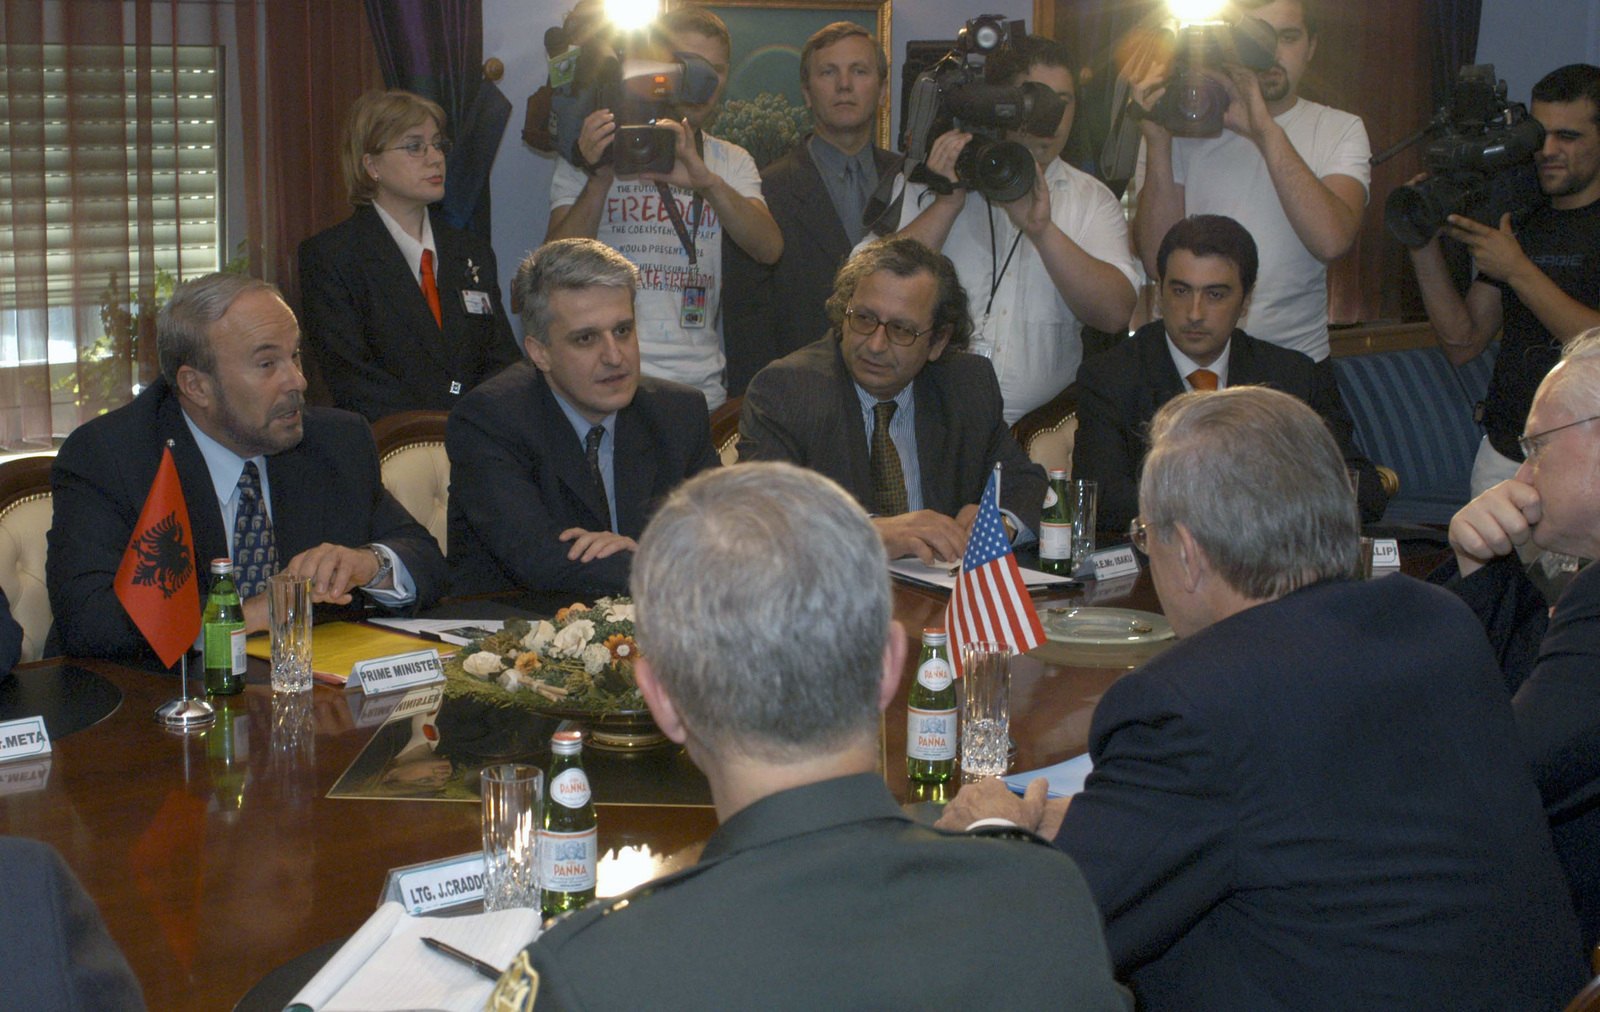 Albanian Prime Minister Fatos Nano (left) and the Minister of Defense Pandeli Majko (2nd from left), and other officials of the Albanian Government, meet with The Honorable Donald H. Rumsfeld, U.S. Secretary of Defense (center foreground) at Tirana, Albania, on Jun. 10, 2003. (DoD photo by Robert D. Ward)